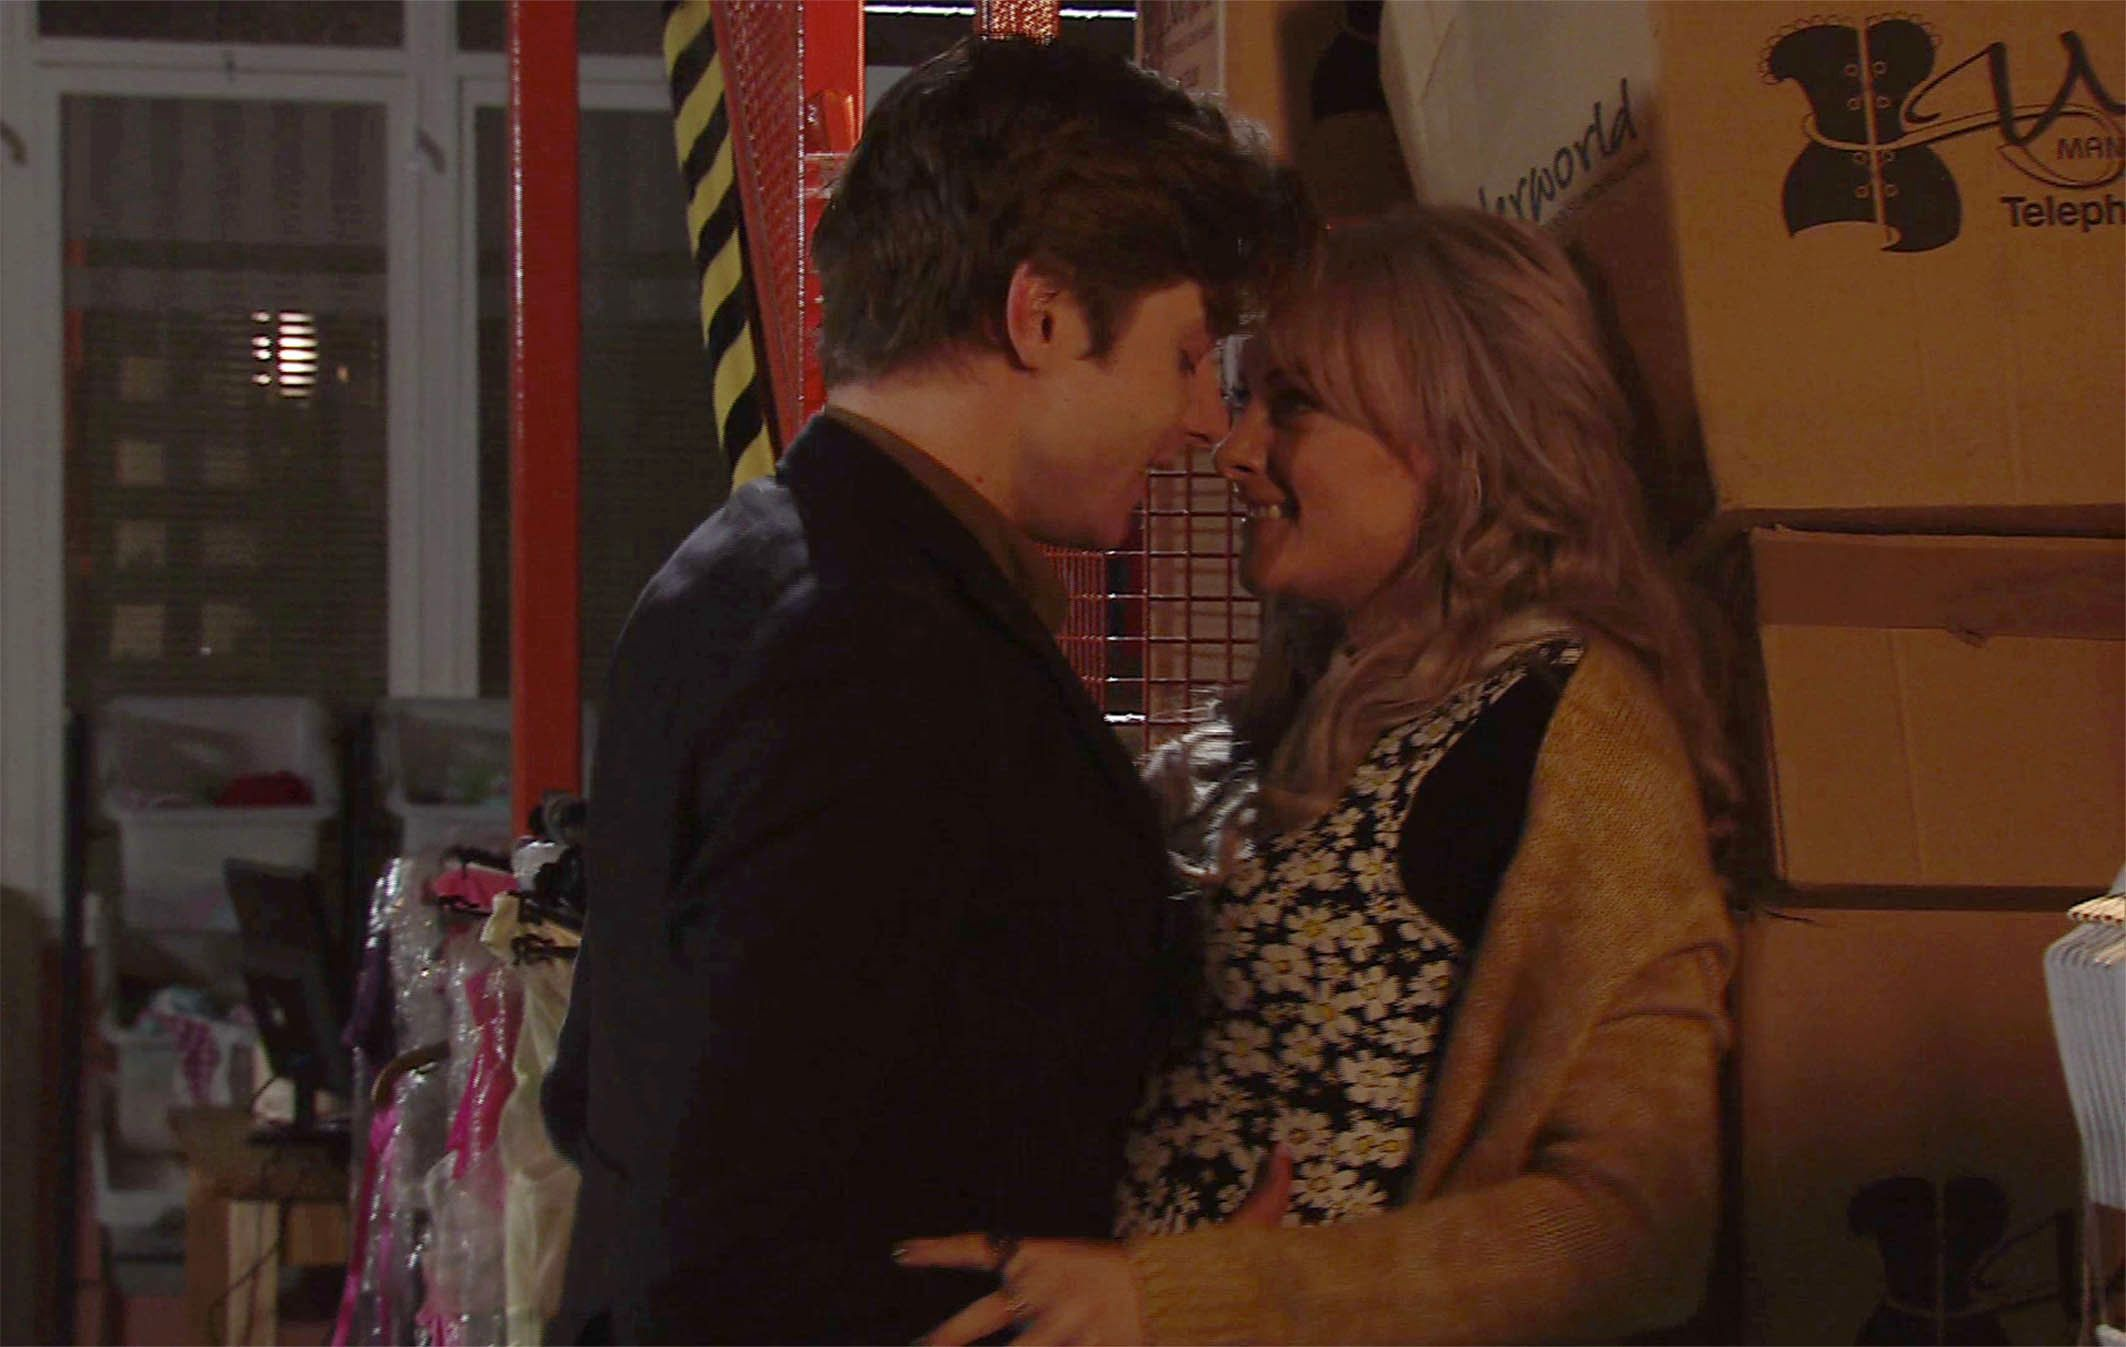 'Corrie' Spoiler! Chesney Set For Heartbreak As Sinead Cheats With